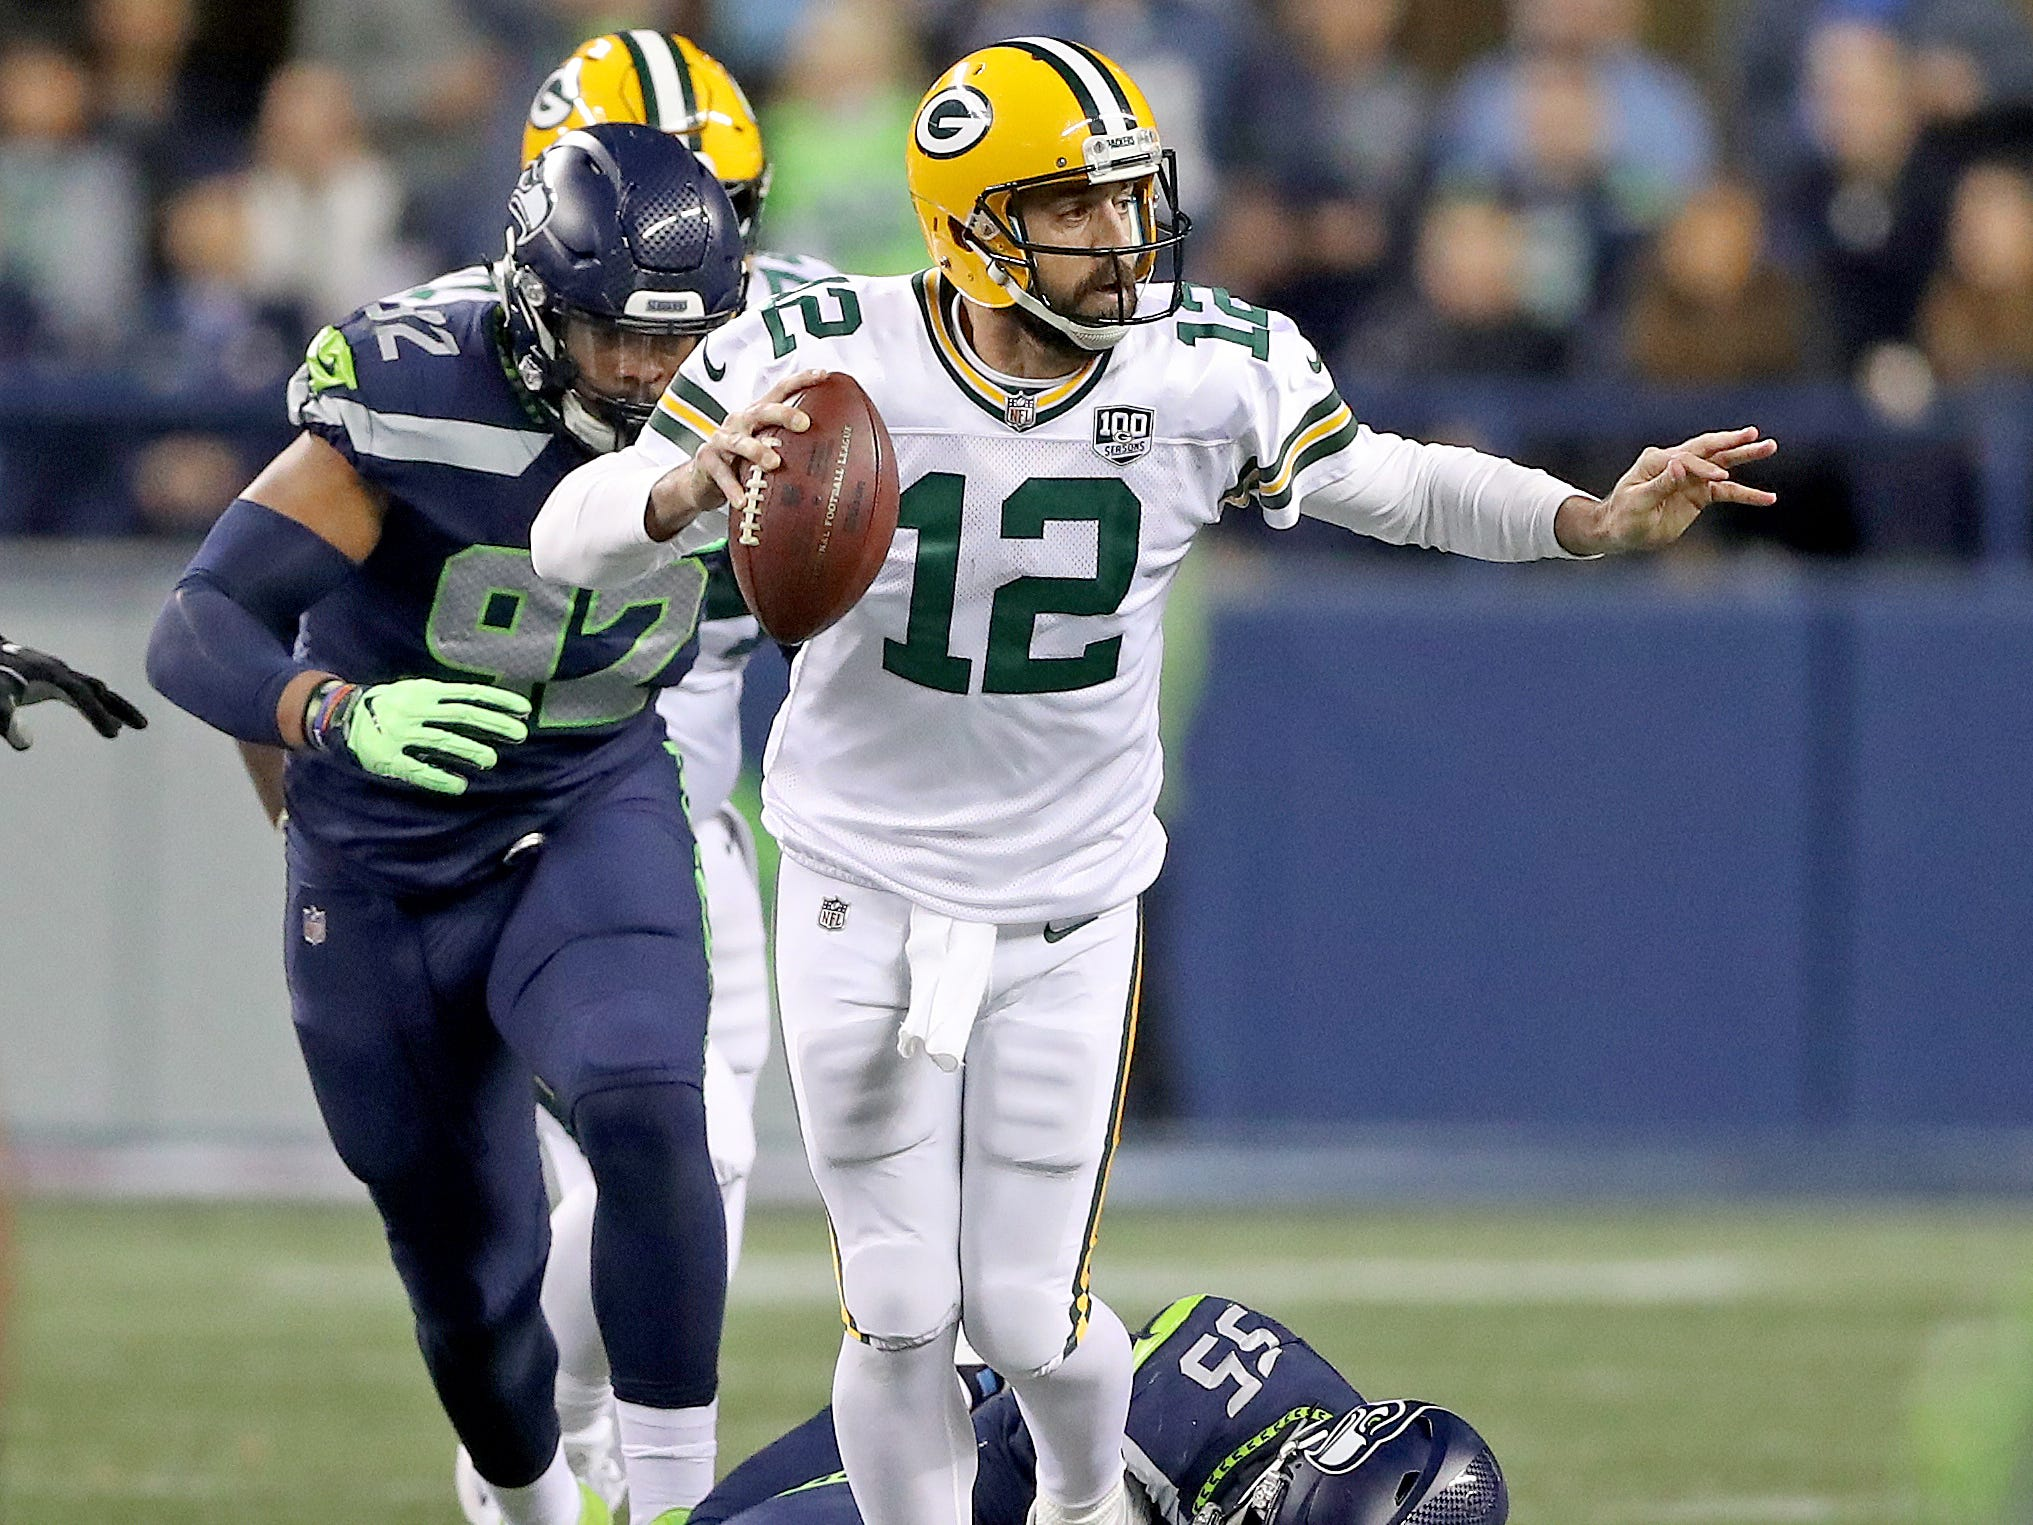 Green Bay Packers quarterback Aaron Rodgers (12) gets tripped up against the Seattle Seahawks at CenturyLink Field Thursday, November 15, 2018 in Seattle, WA. Jim Matthews/USA TODAY NETWORK-Wis